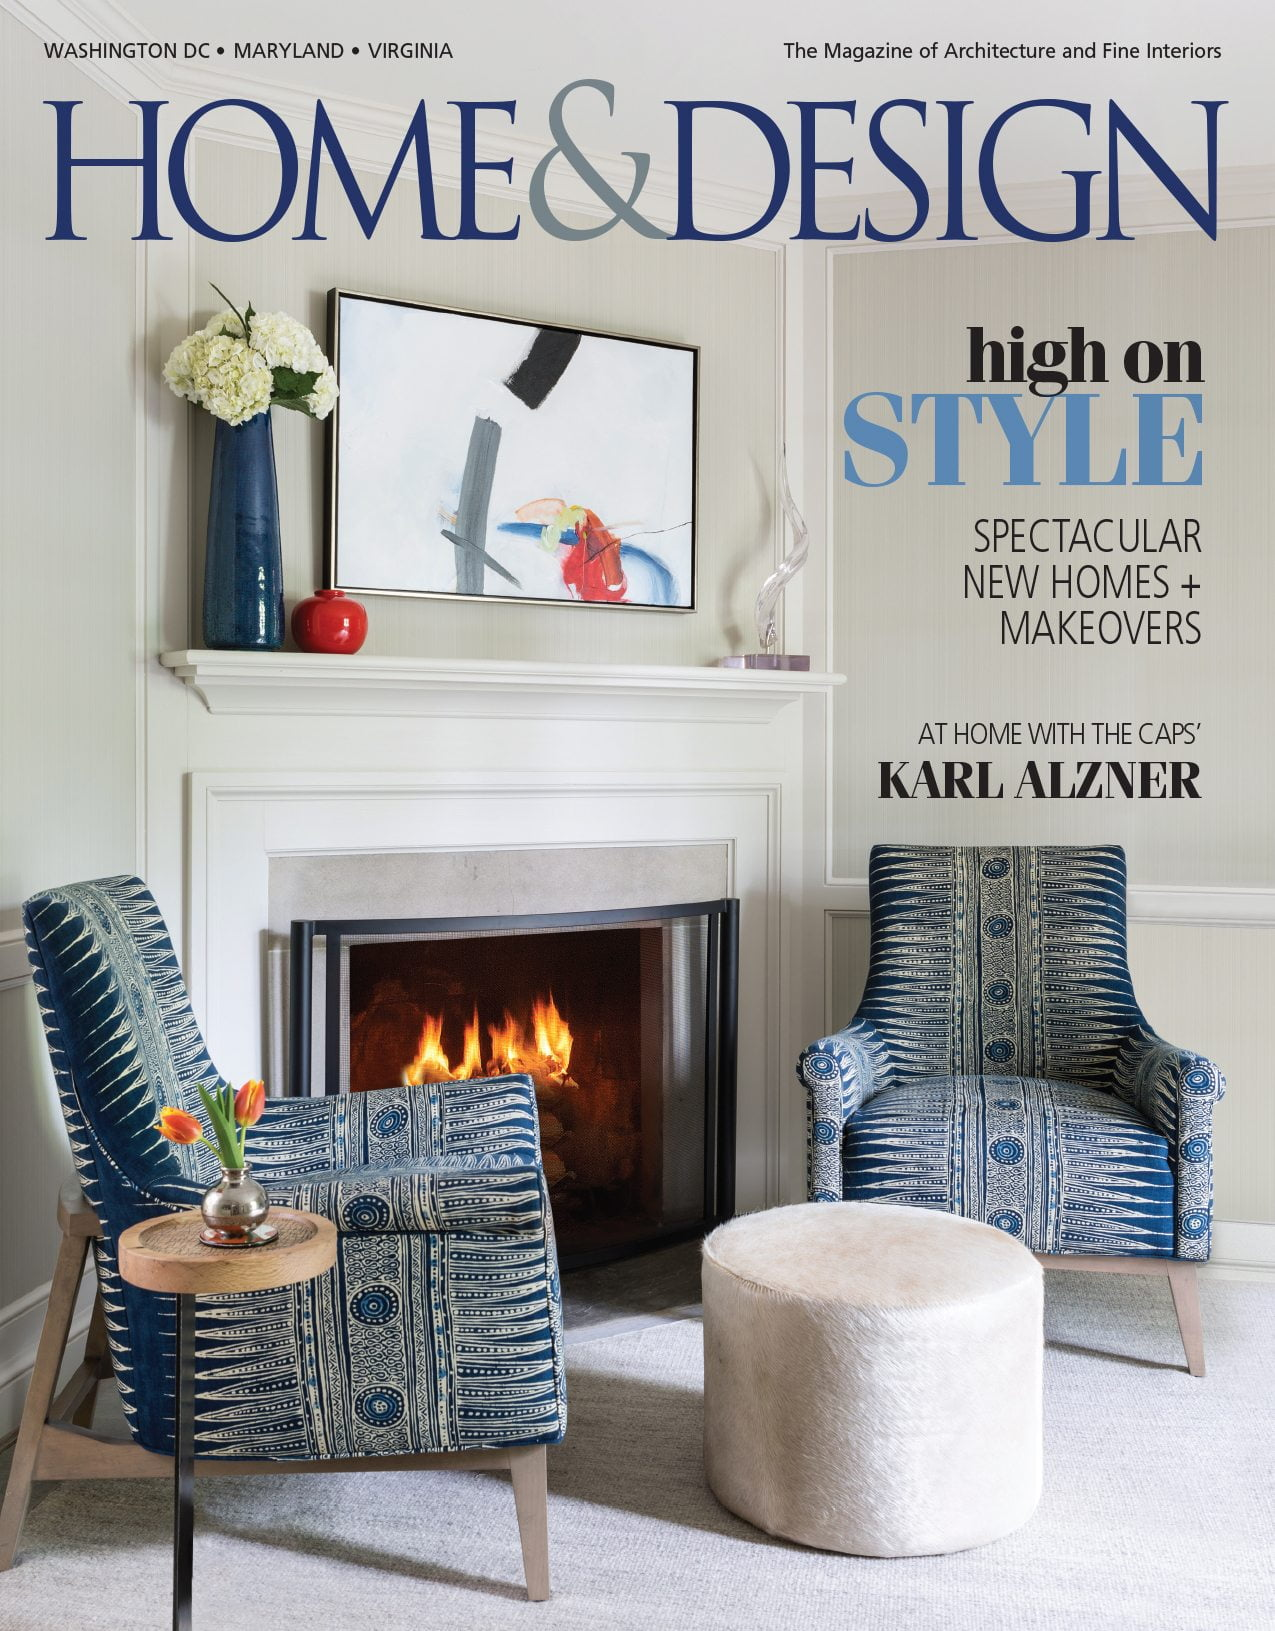 Home Design Magazine november/december 2016 archives - home & design magazine